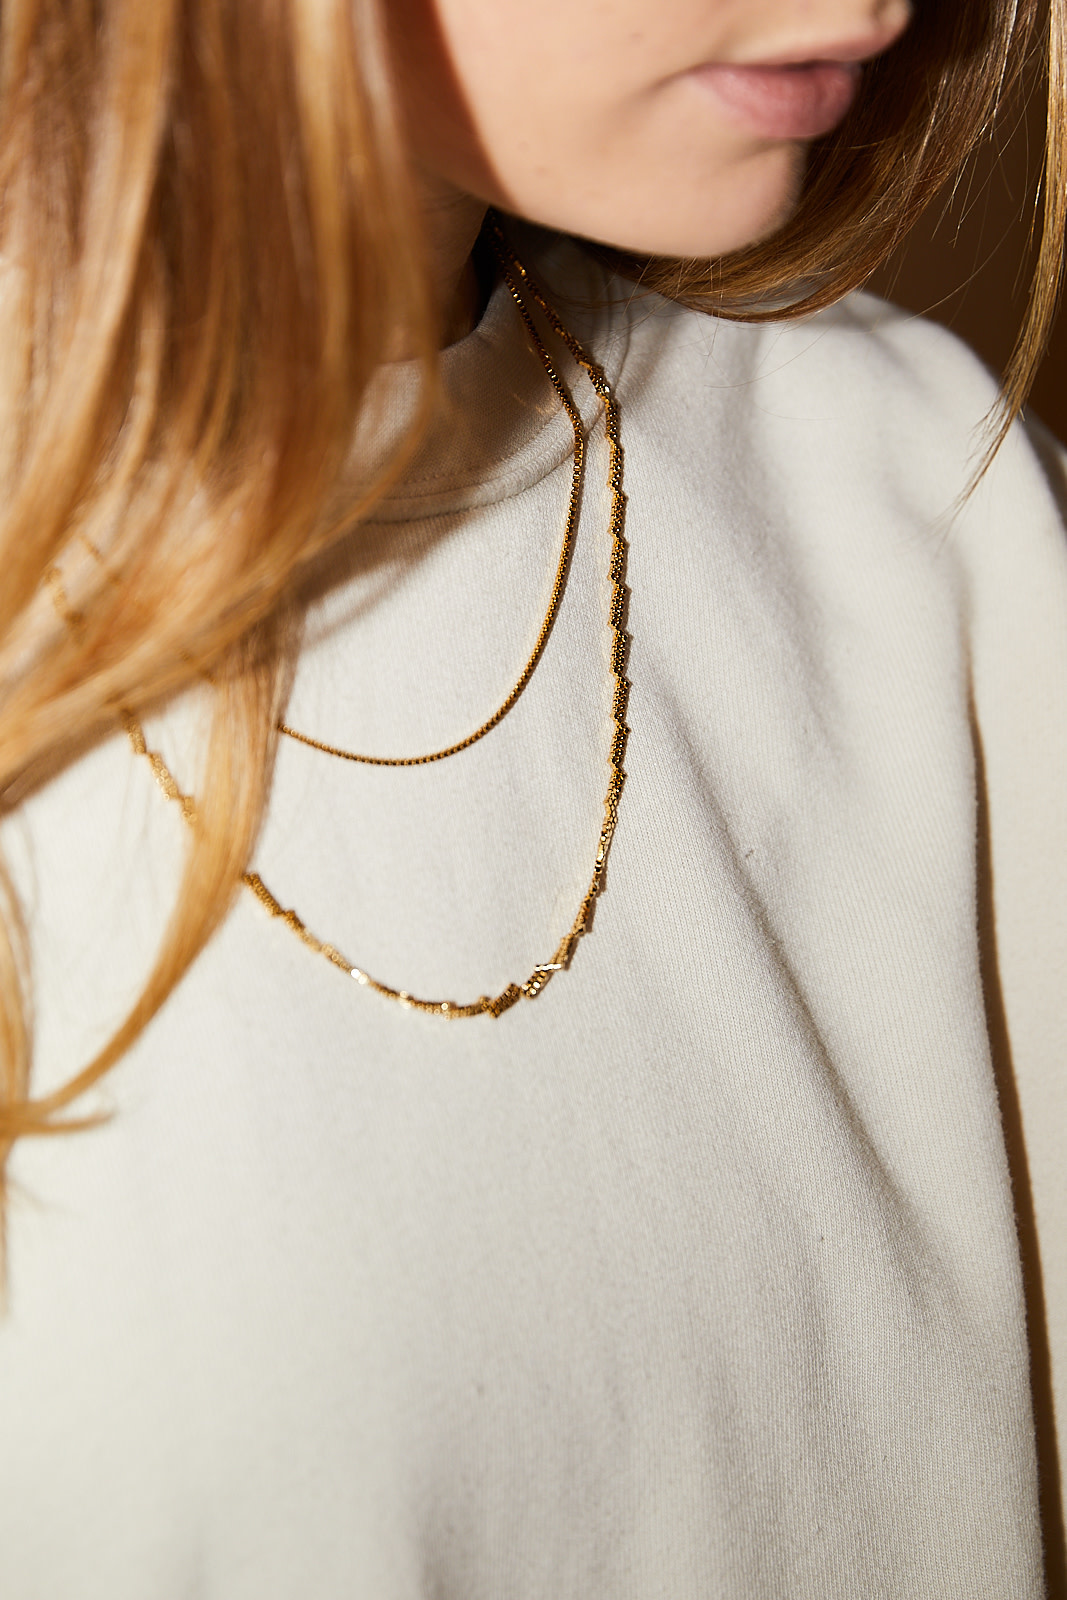 Martine Viergever Zigzag necklace